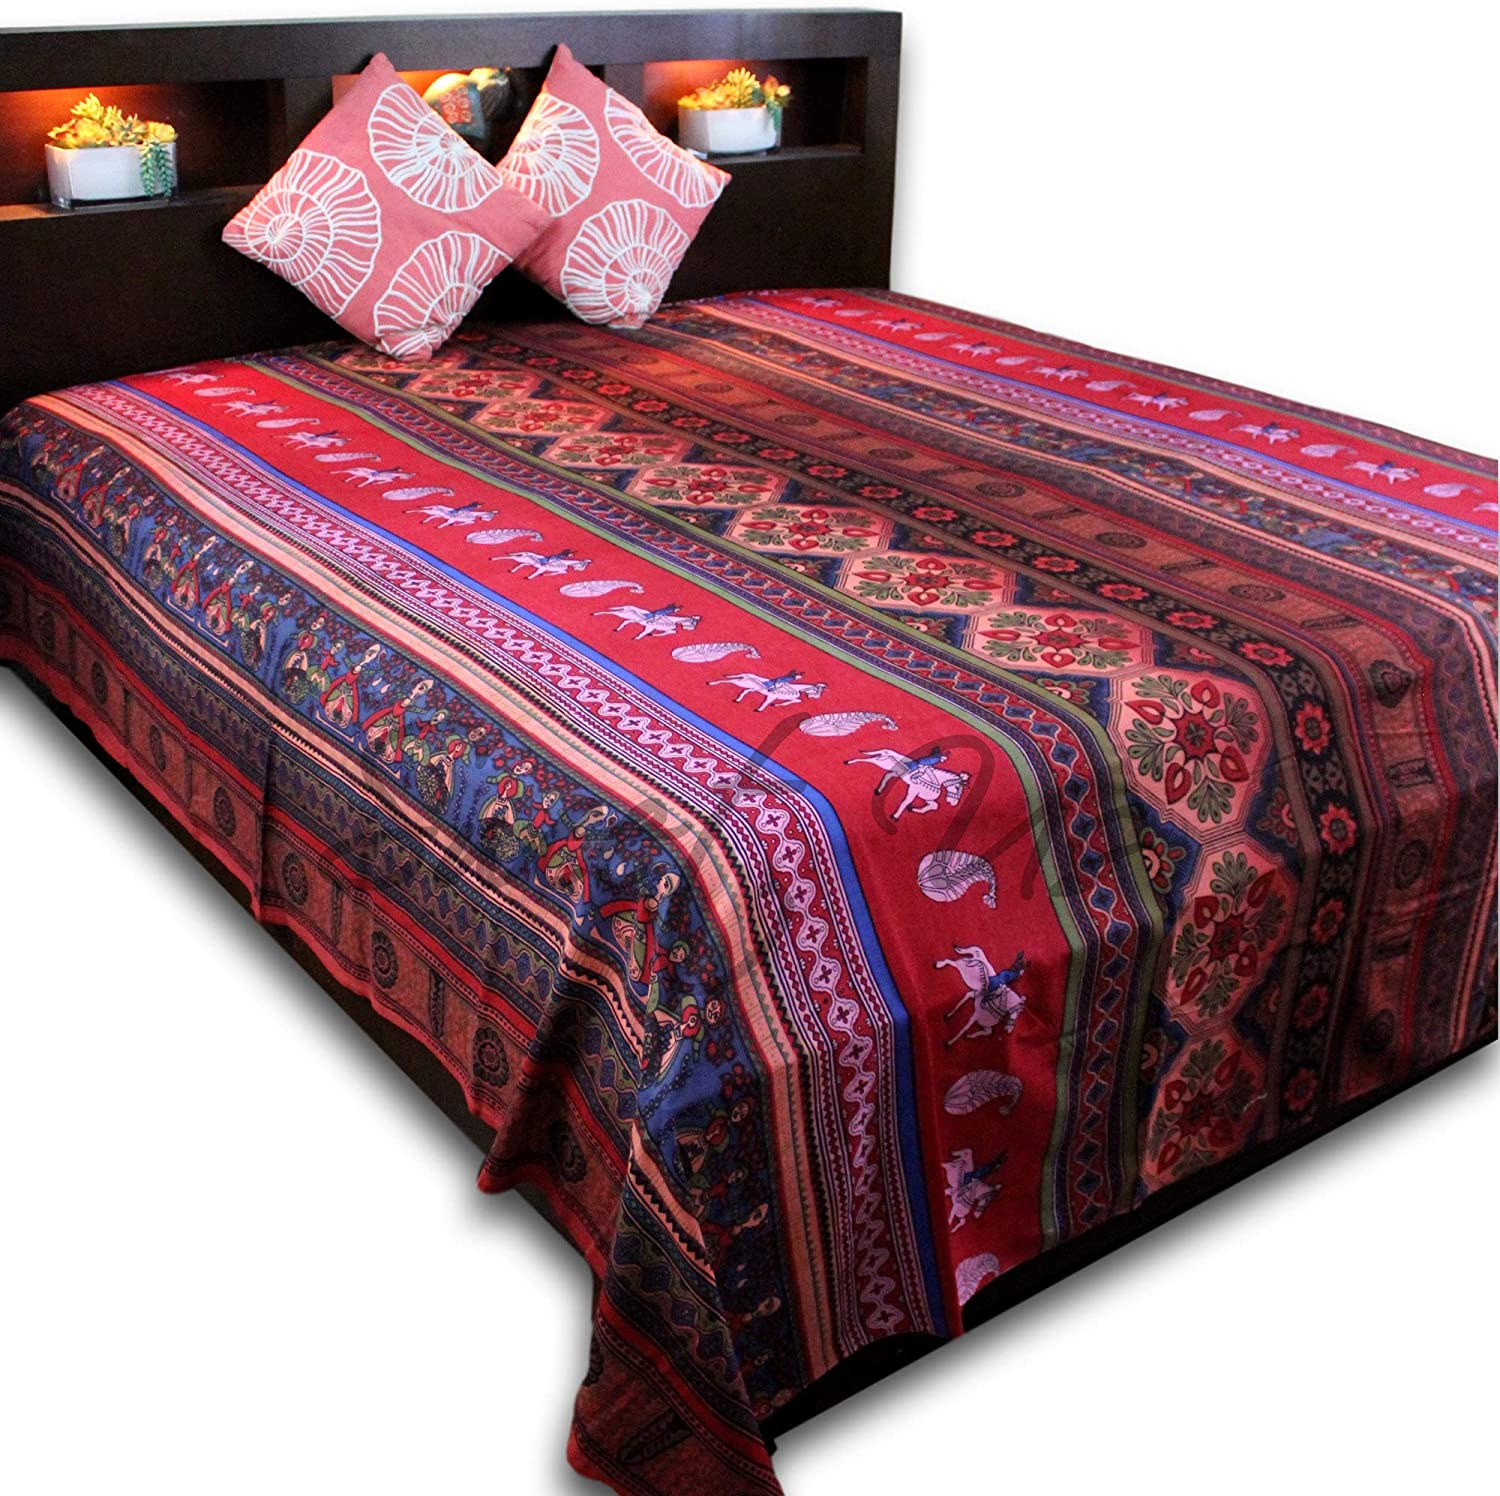 Cotton Kalamkari Tie Dye Tapestry Wall Hanging Bedspread Full Tablecloth Rectangular Beach sheet Bed-sheet Dorm Decor Red (Red, Full 88 x 106 inches)